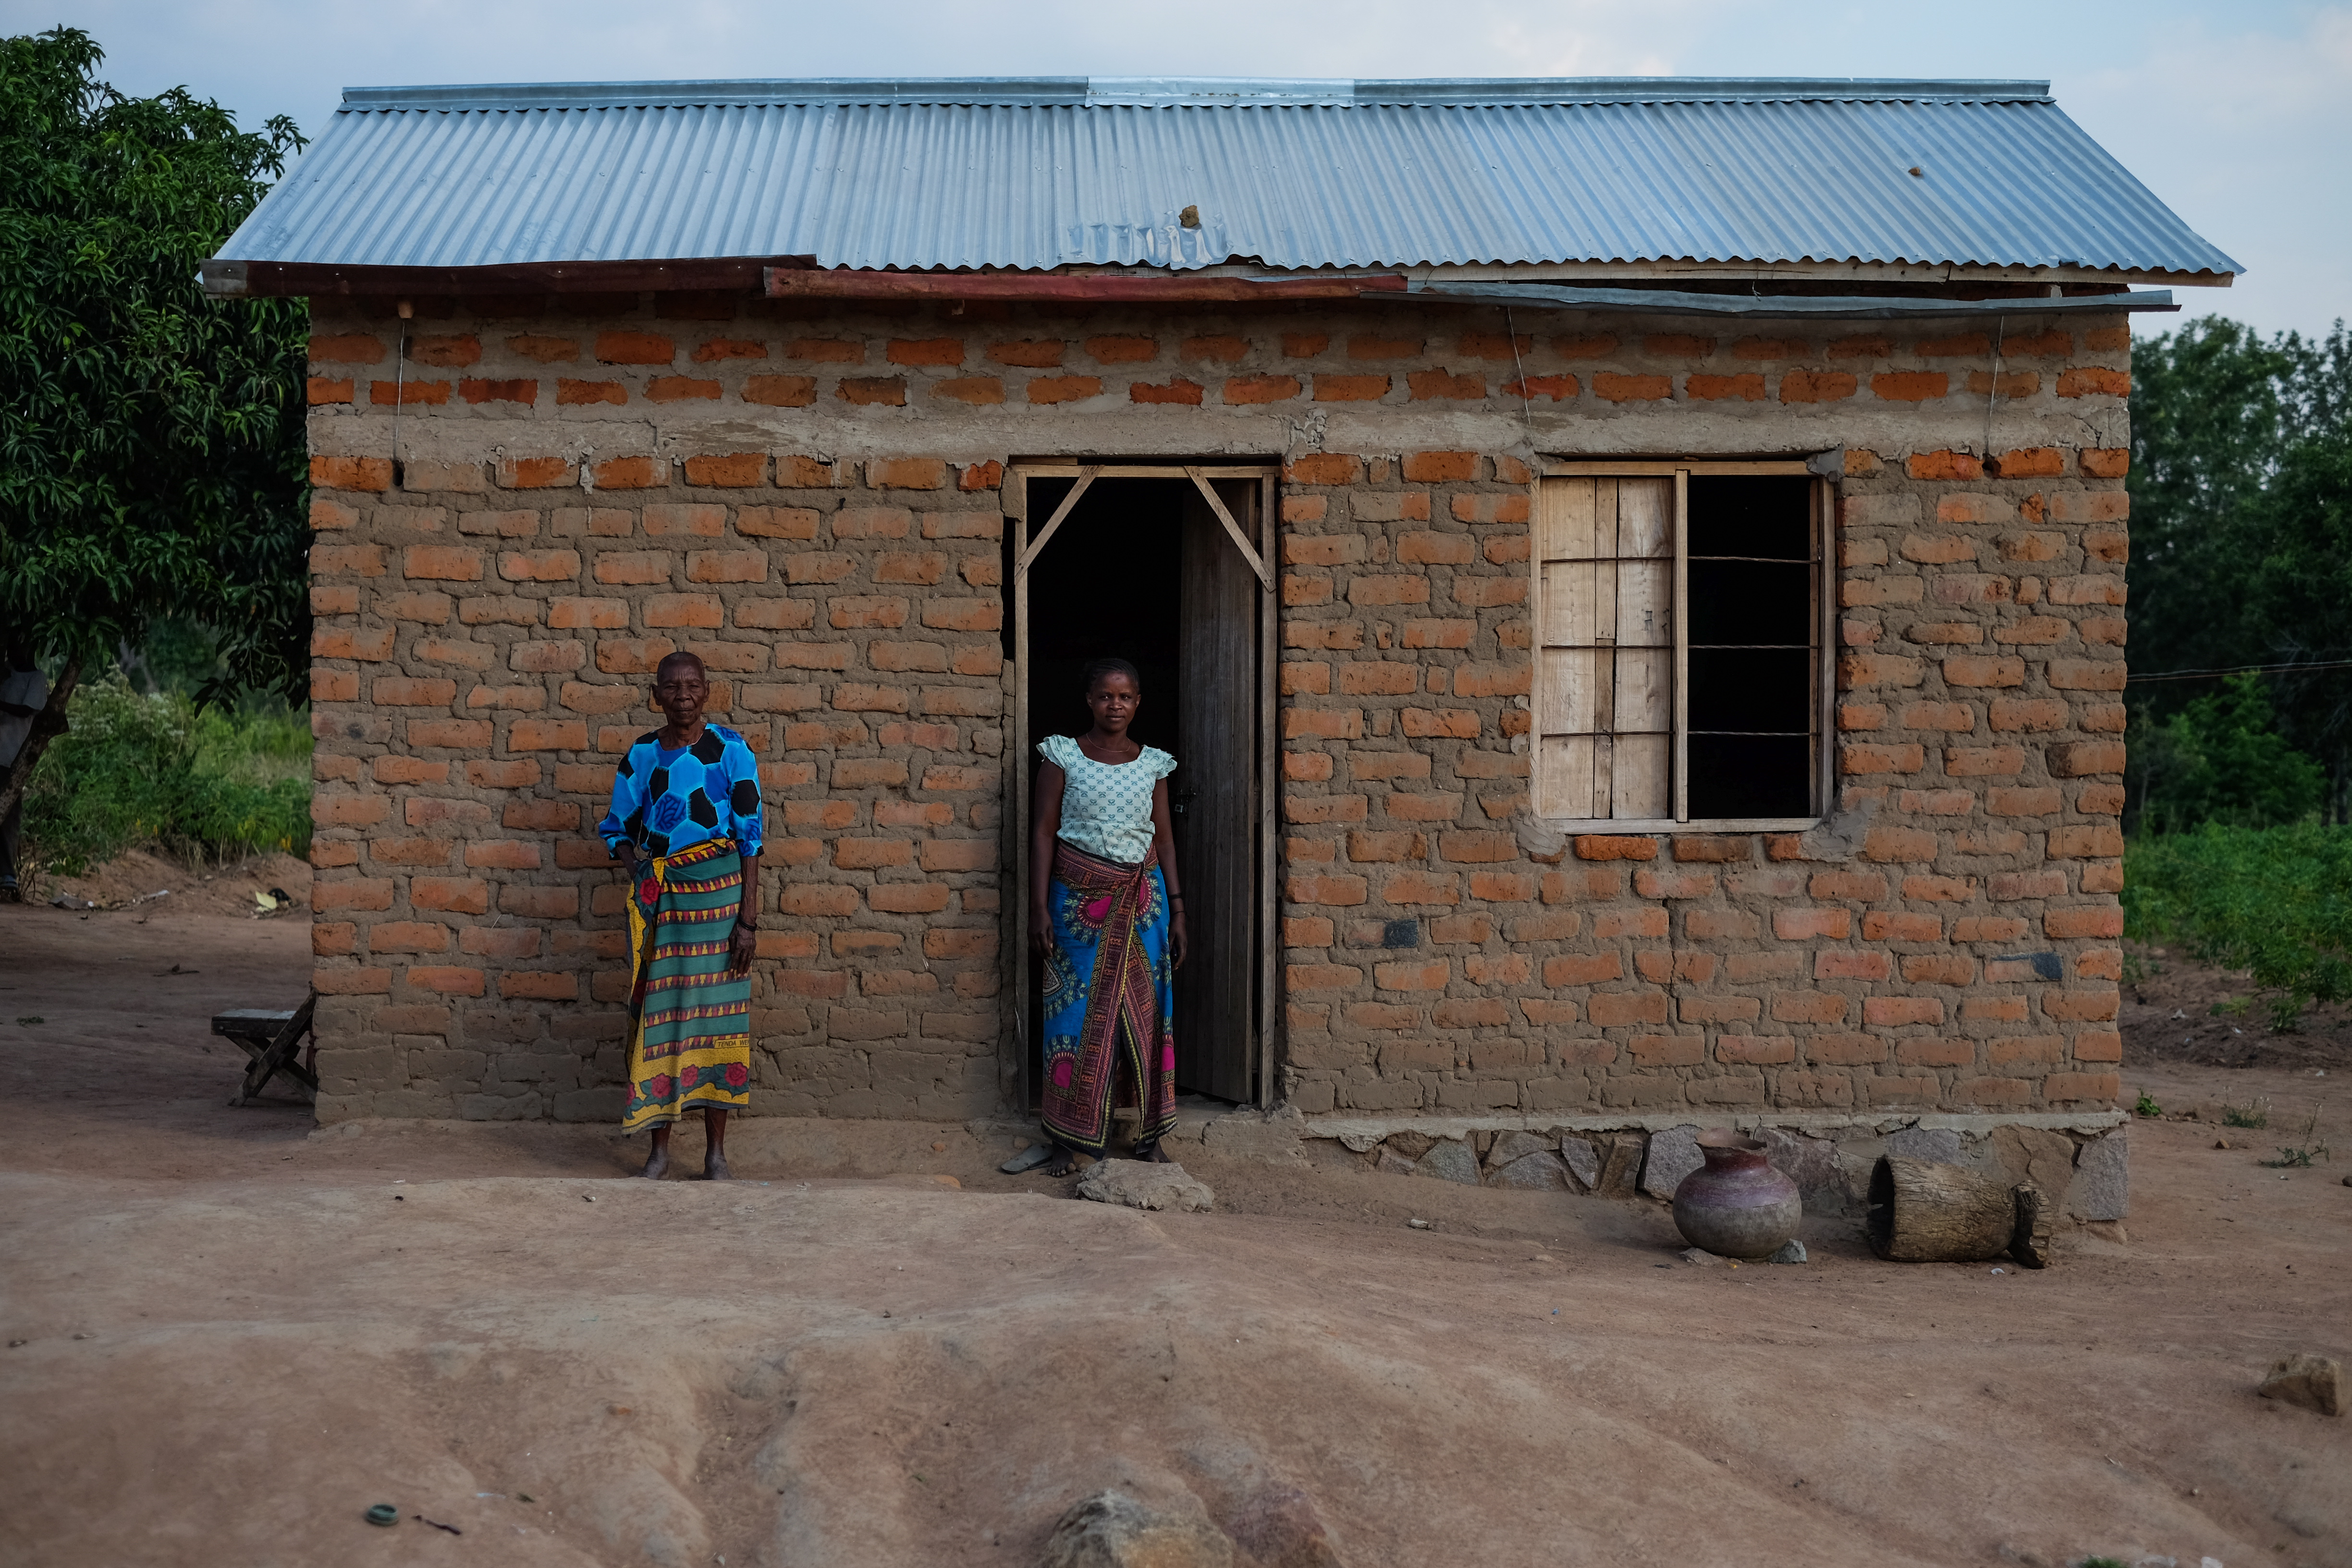 Women in nyumba ntobhu marriage pose outside their house